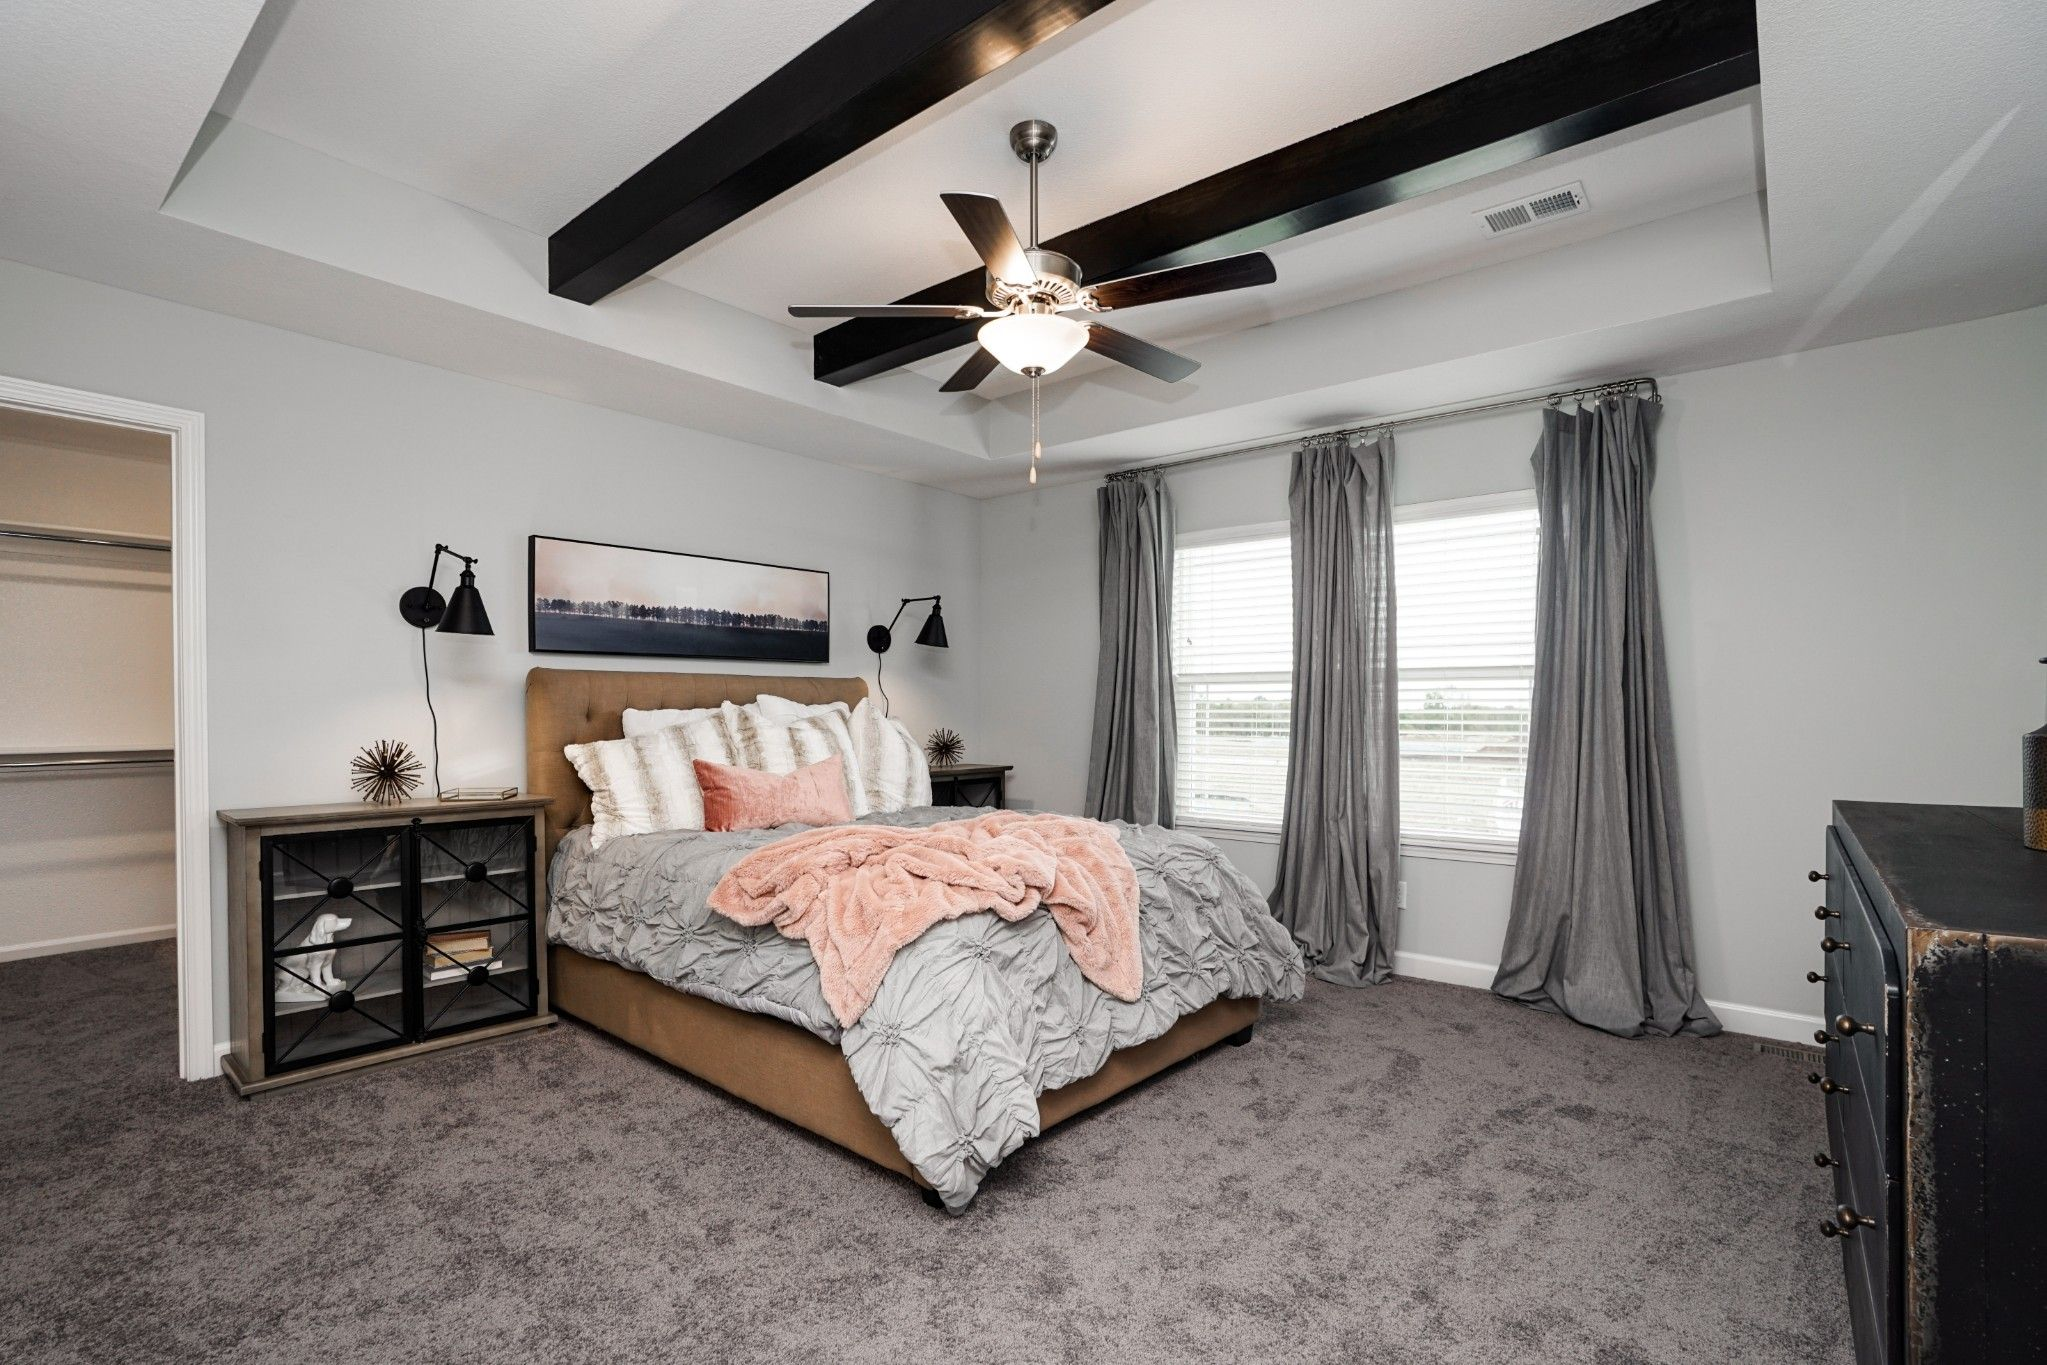 Bedroom featured in the Palmer - IA By Summit Homes in Des Moines, IA